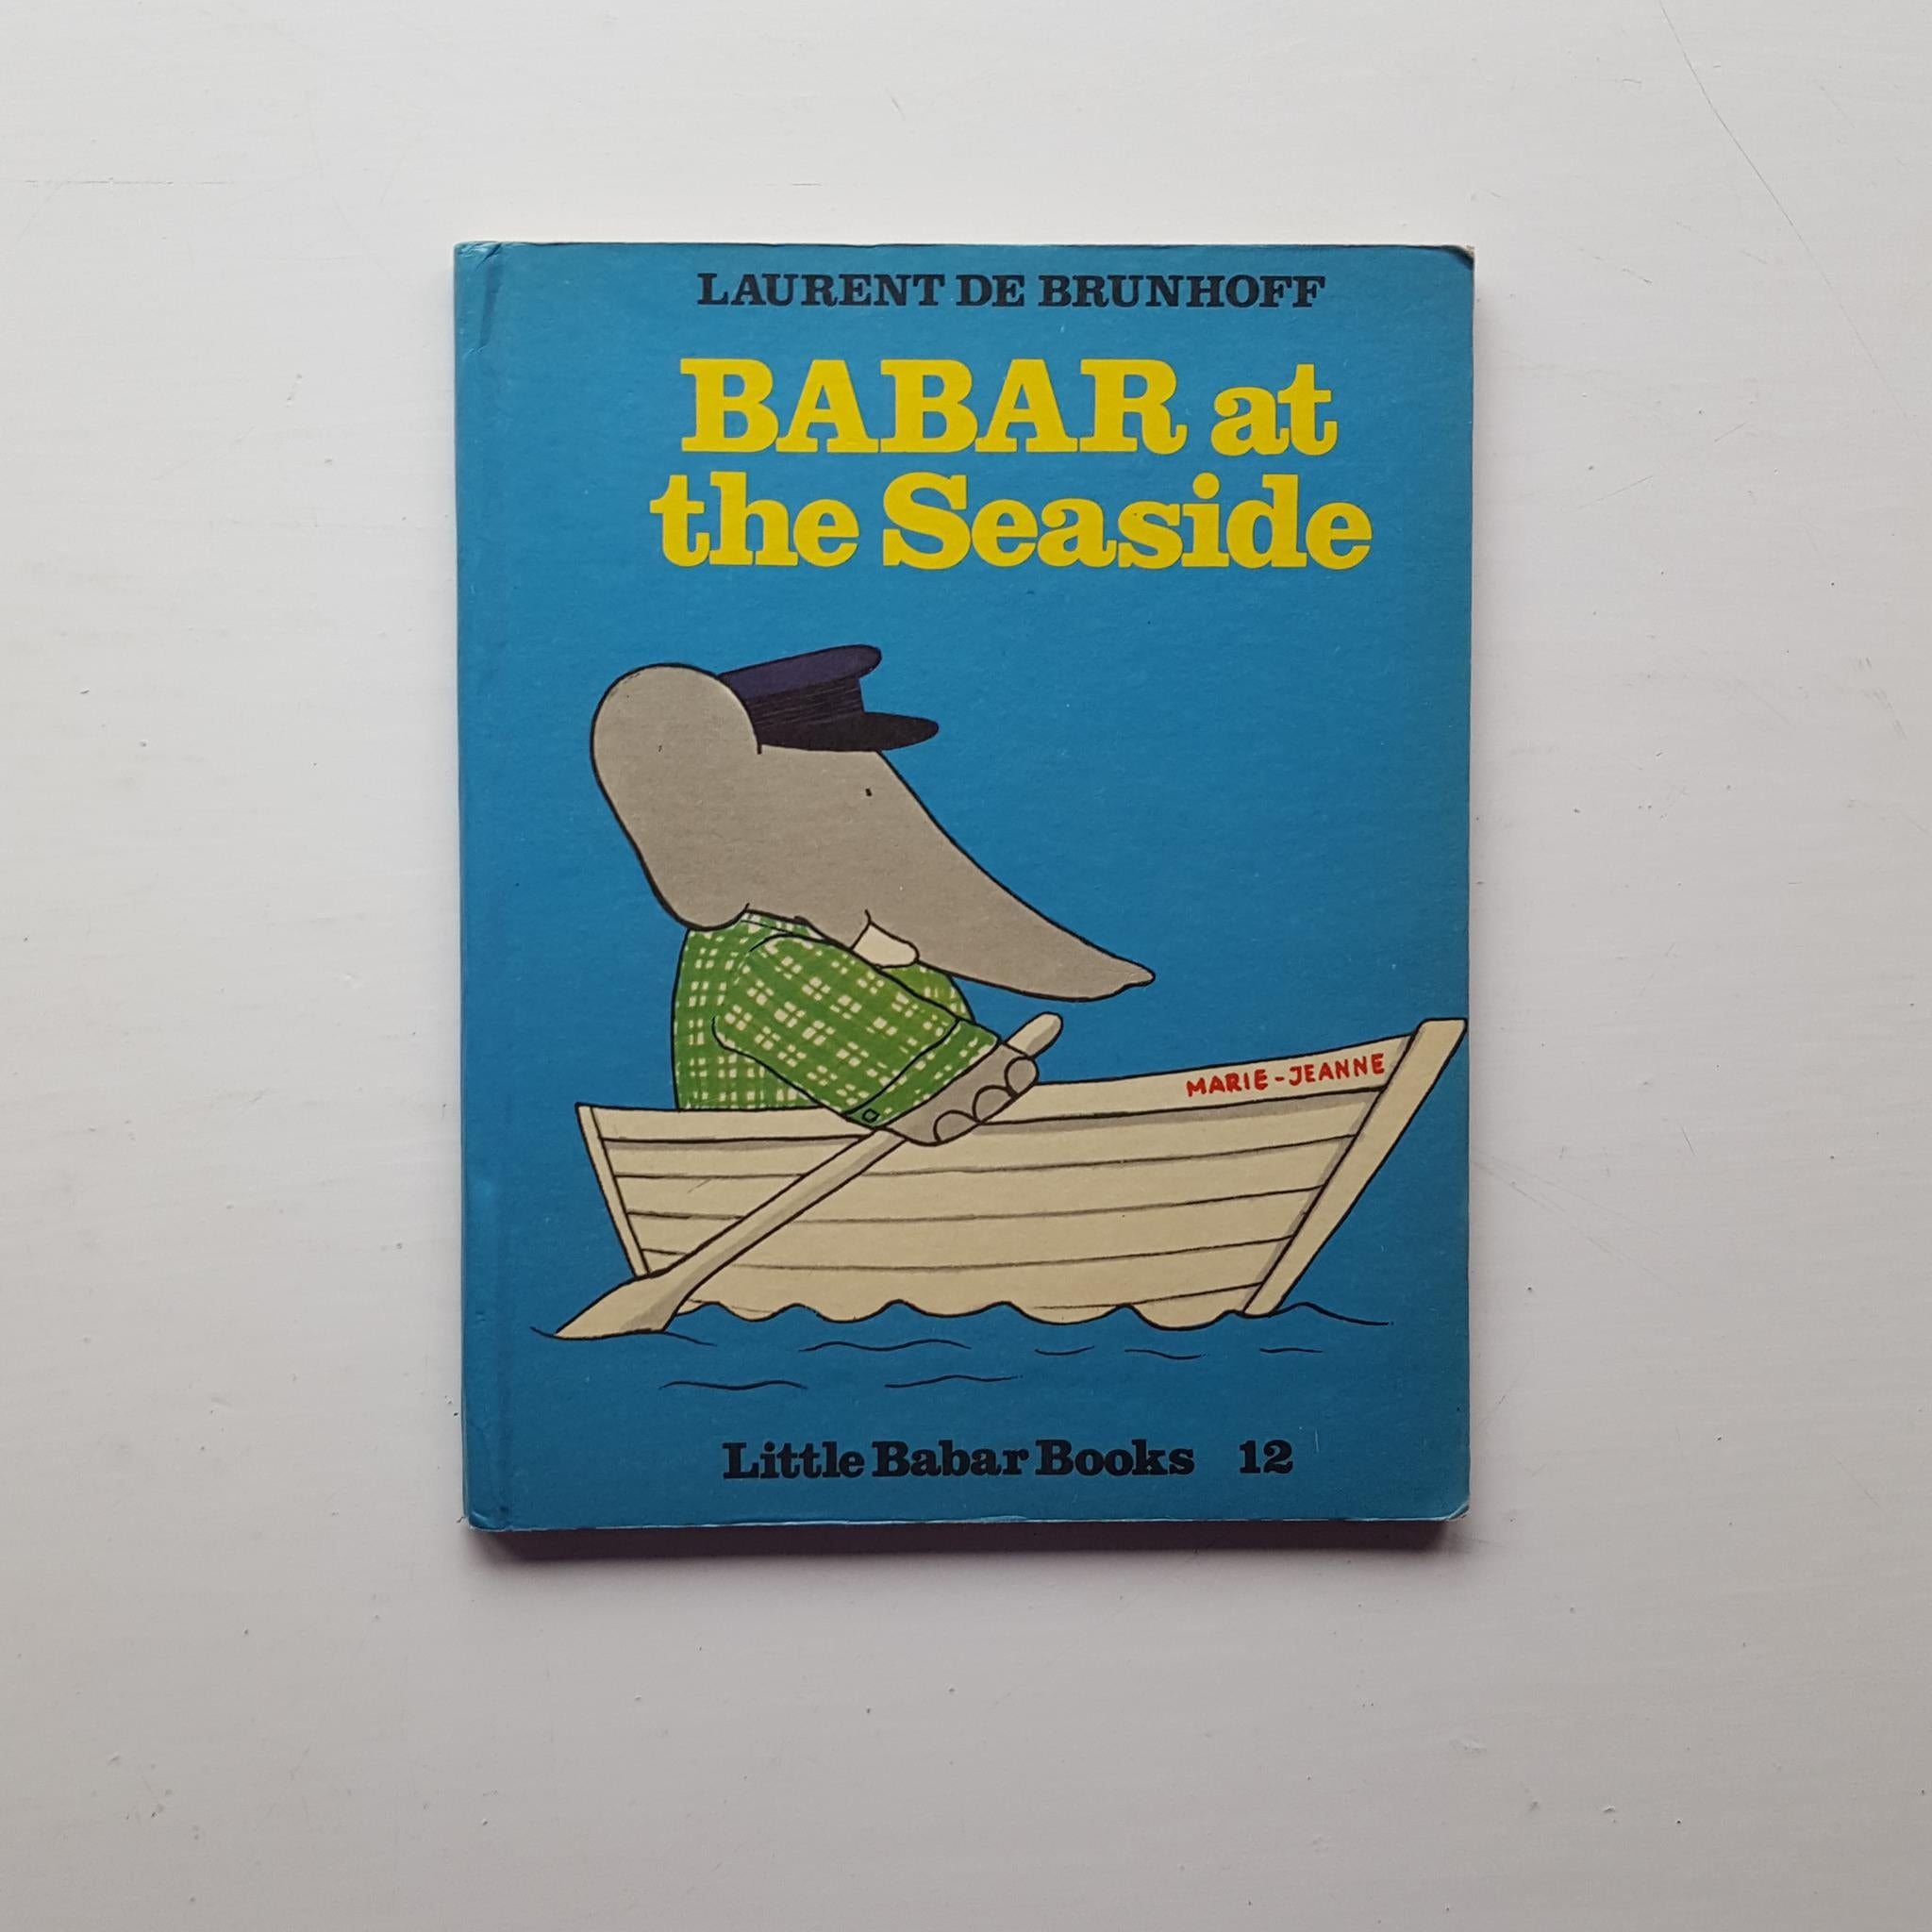 Babar at the Seaside by Laurent de Brunhoff